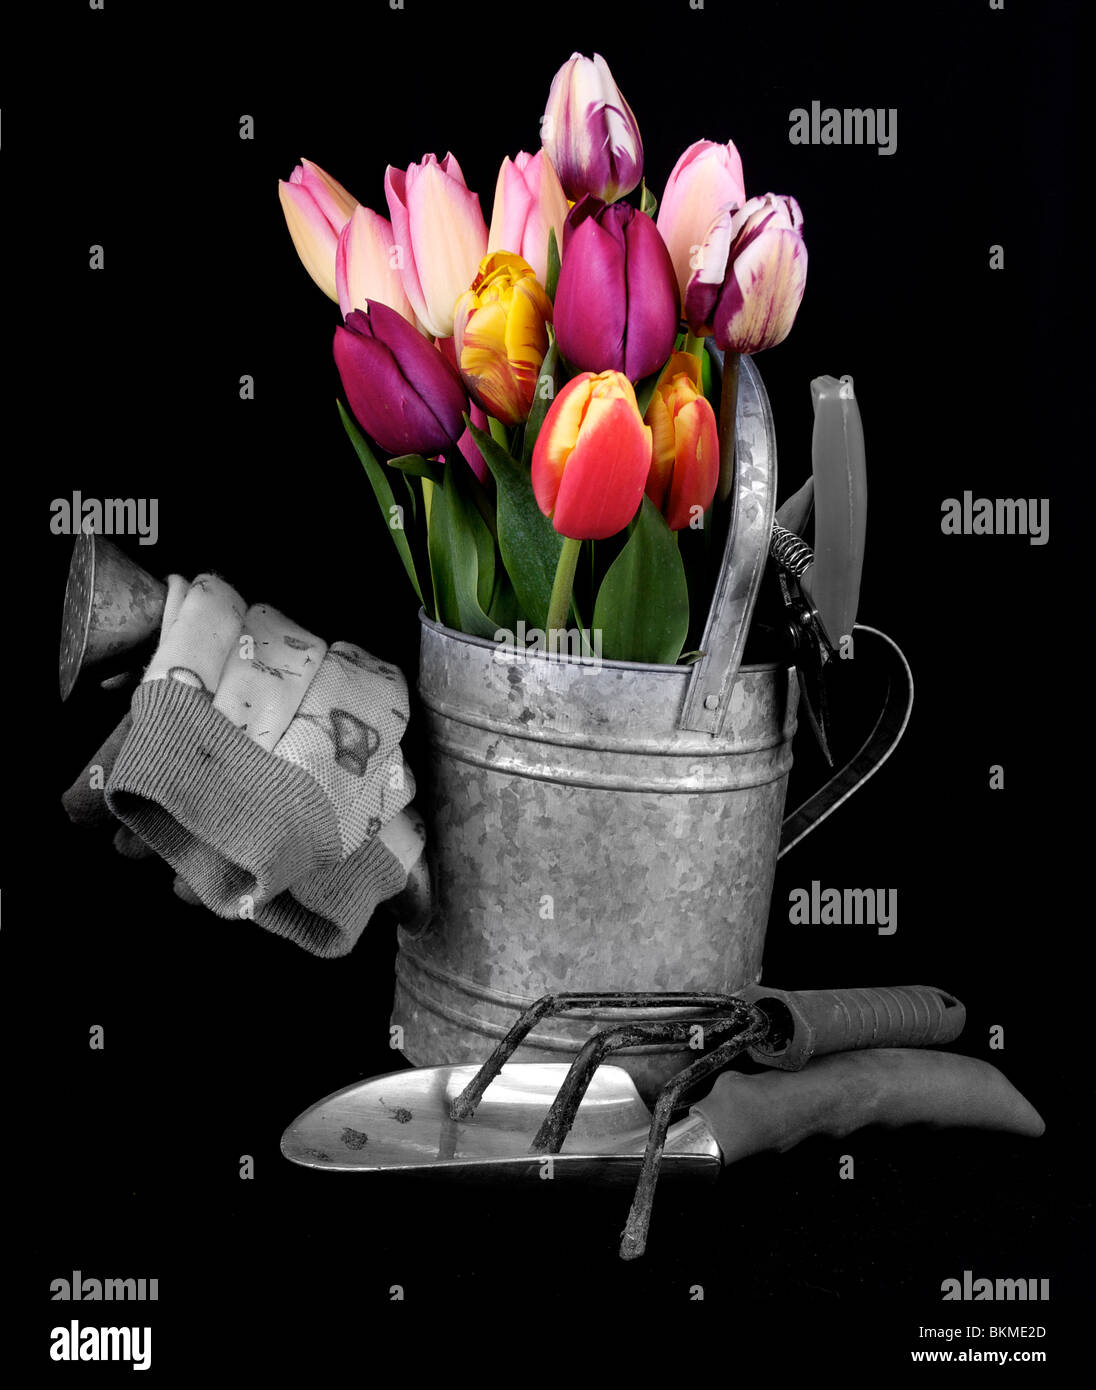 Still life of garden tools and tulips in two tones on a black back ground - Stock Image